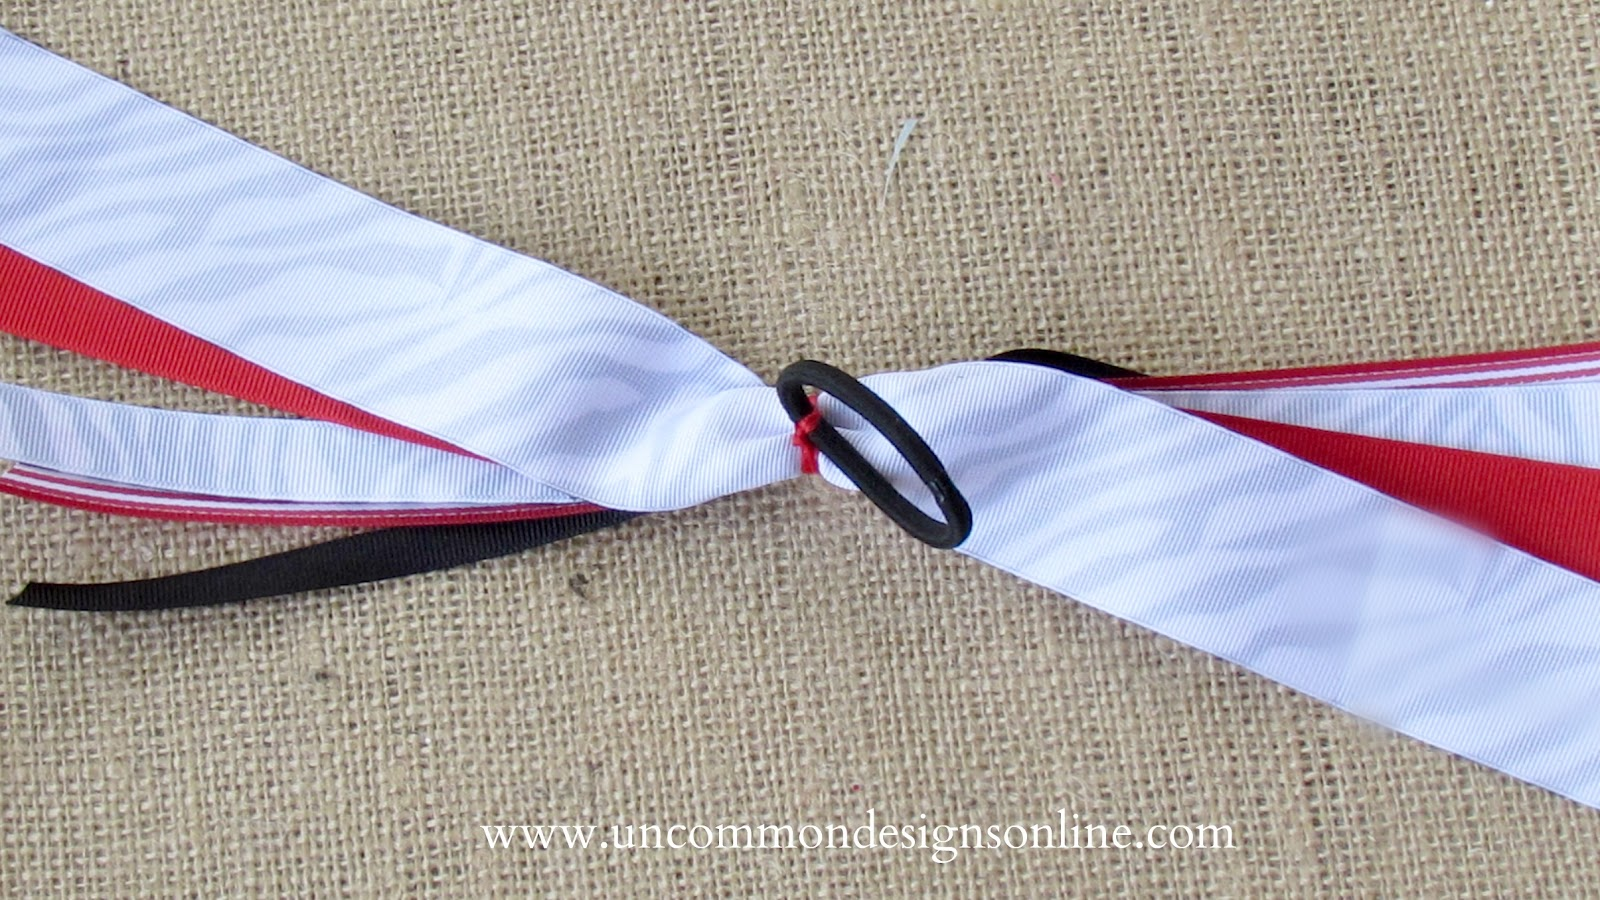 How To Make Spirit And Cheer Ribbons Hair Bows With The I Top Howtotiethebowtieknottyinginstructionspng